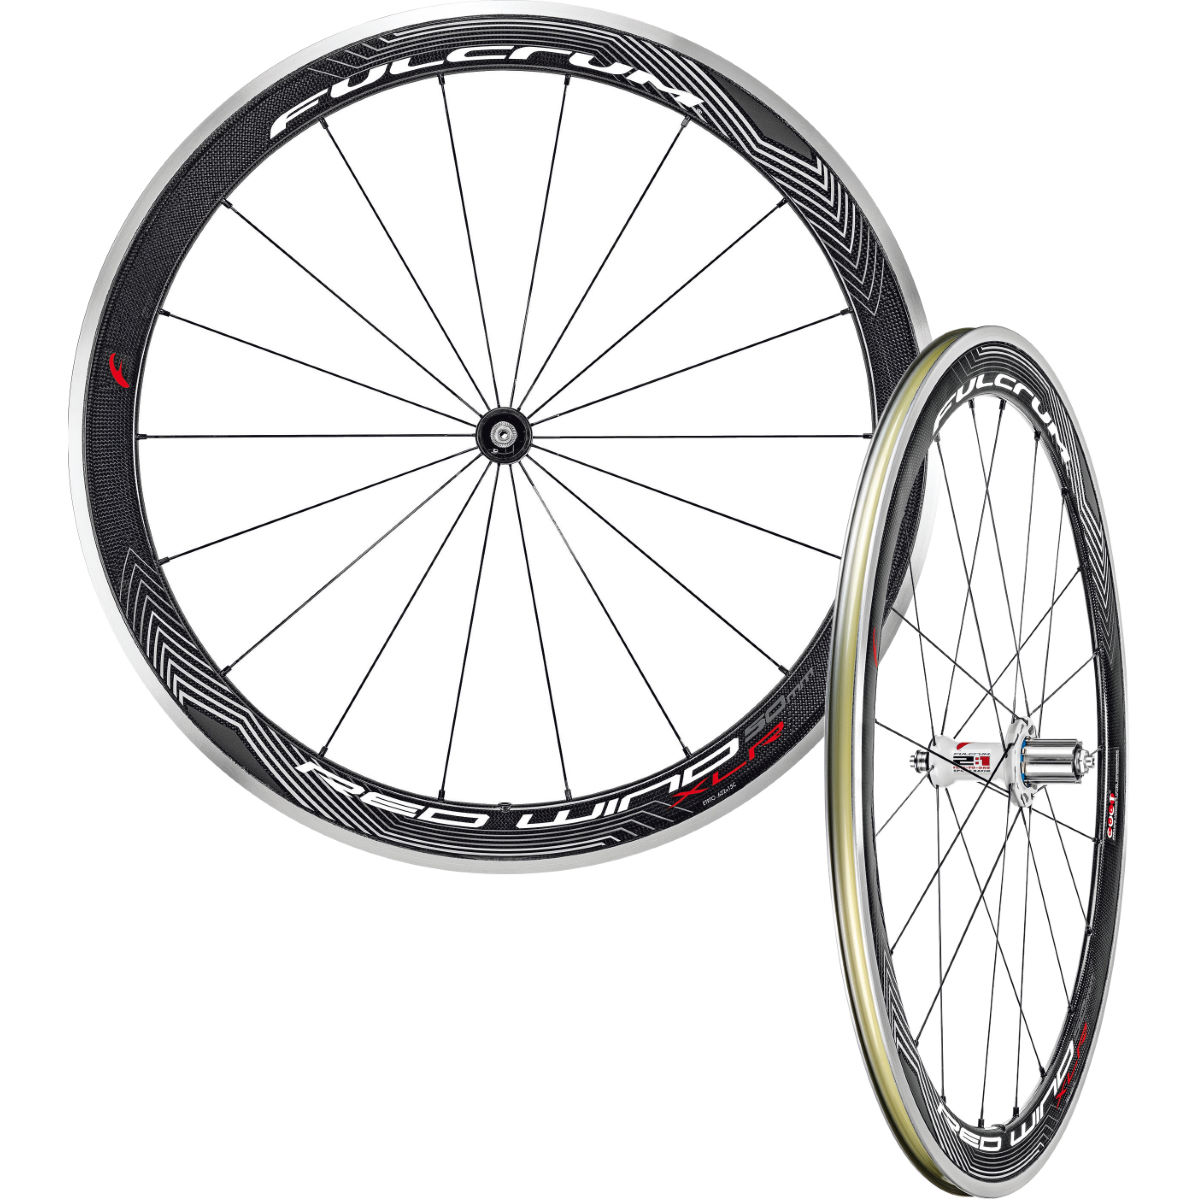 Paire de roues Fulcrum Red Wind 50 XLR (CULT) - Campagnolo 9/10/11 Black/White/Red Roues performance